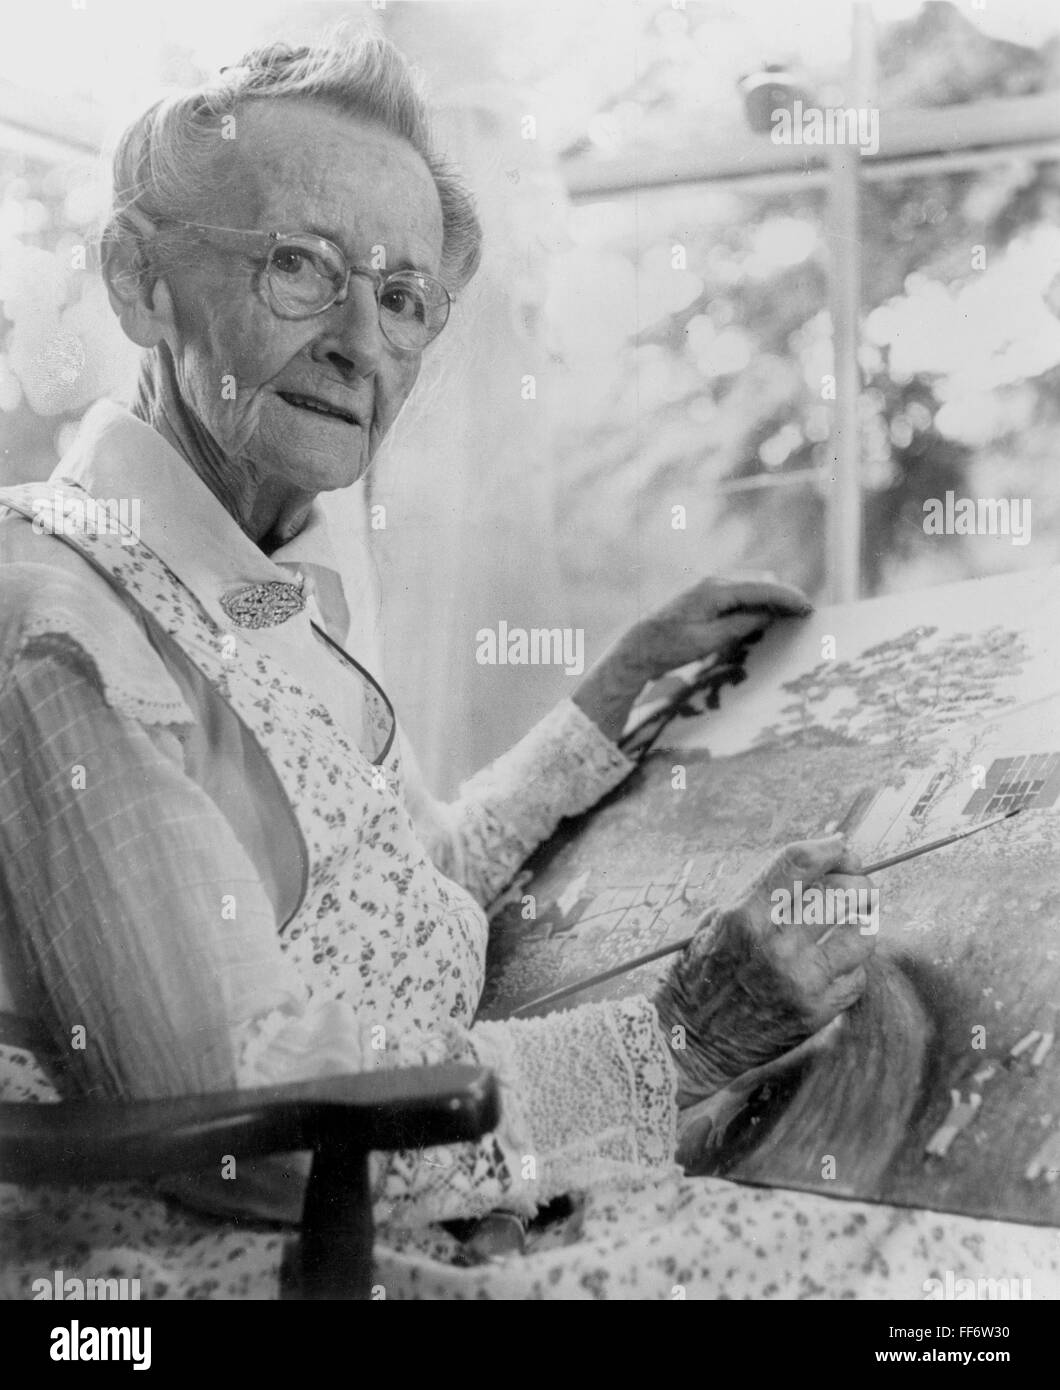 ANNA MARY ROBERTSON /n(1860-1961). Known as Grandma Moses. American Stock  Photo - Alamy